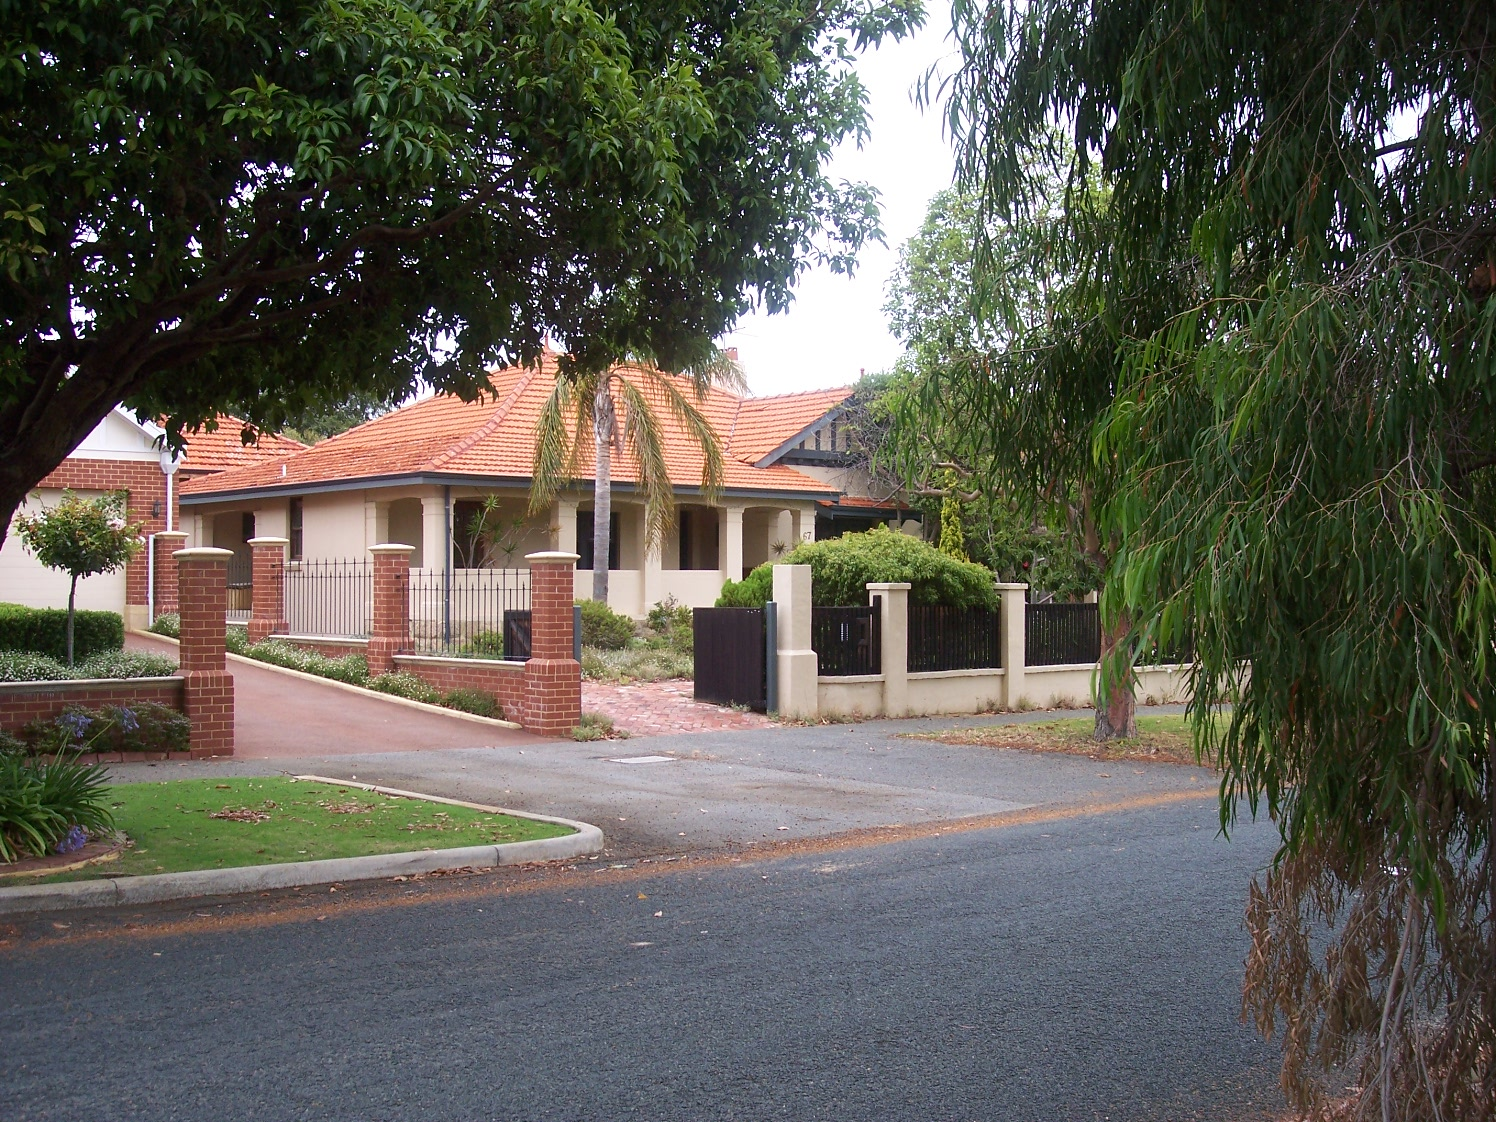 4-1-07 View NW 67 Fortescue Street.jpg